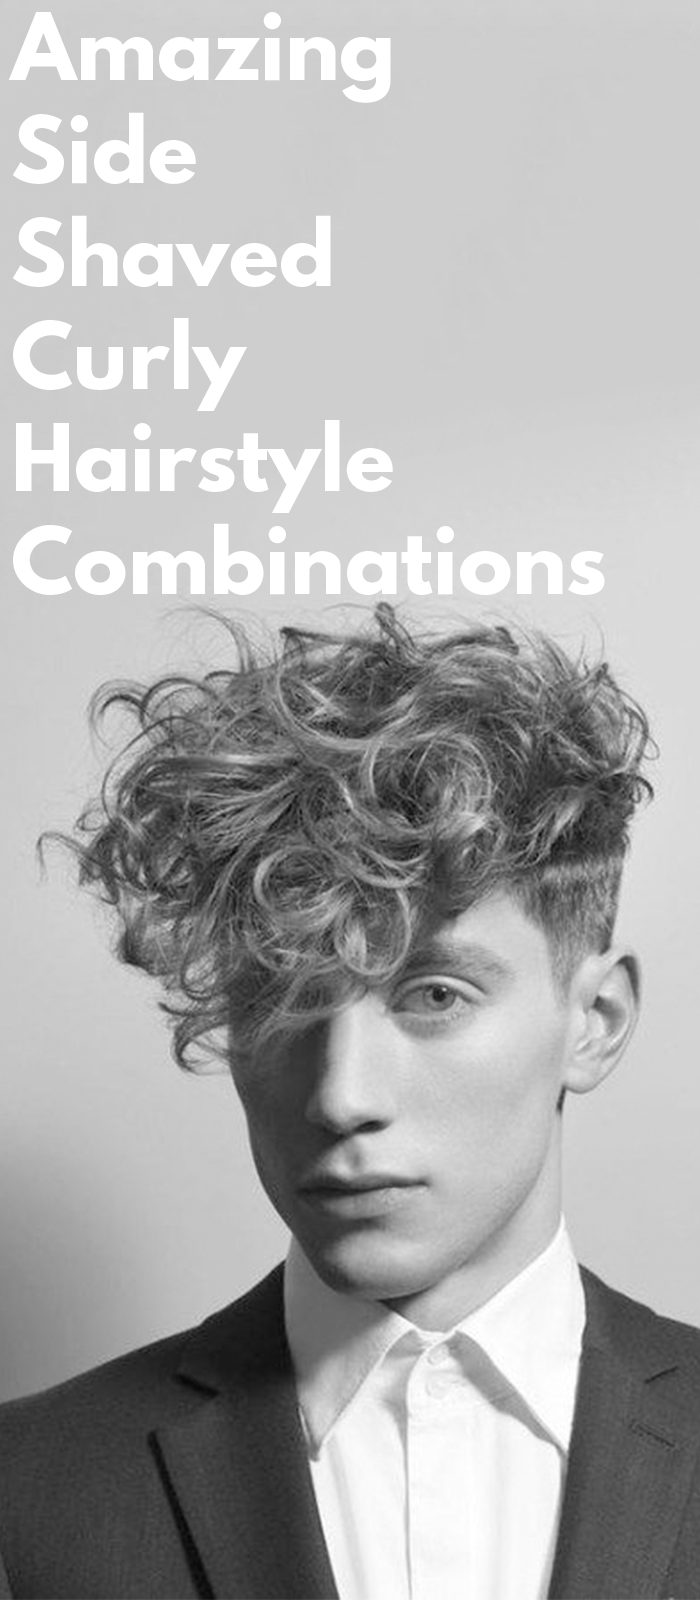 Amazing Side Shaved Curly Hairstyle Combinations